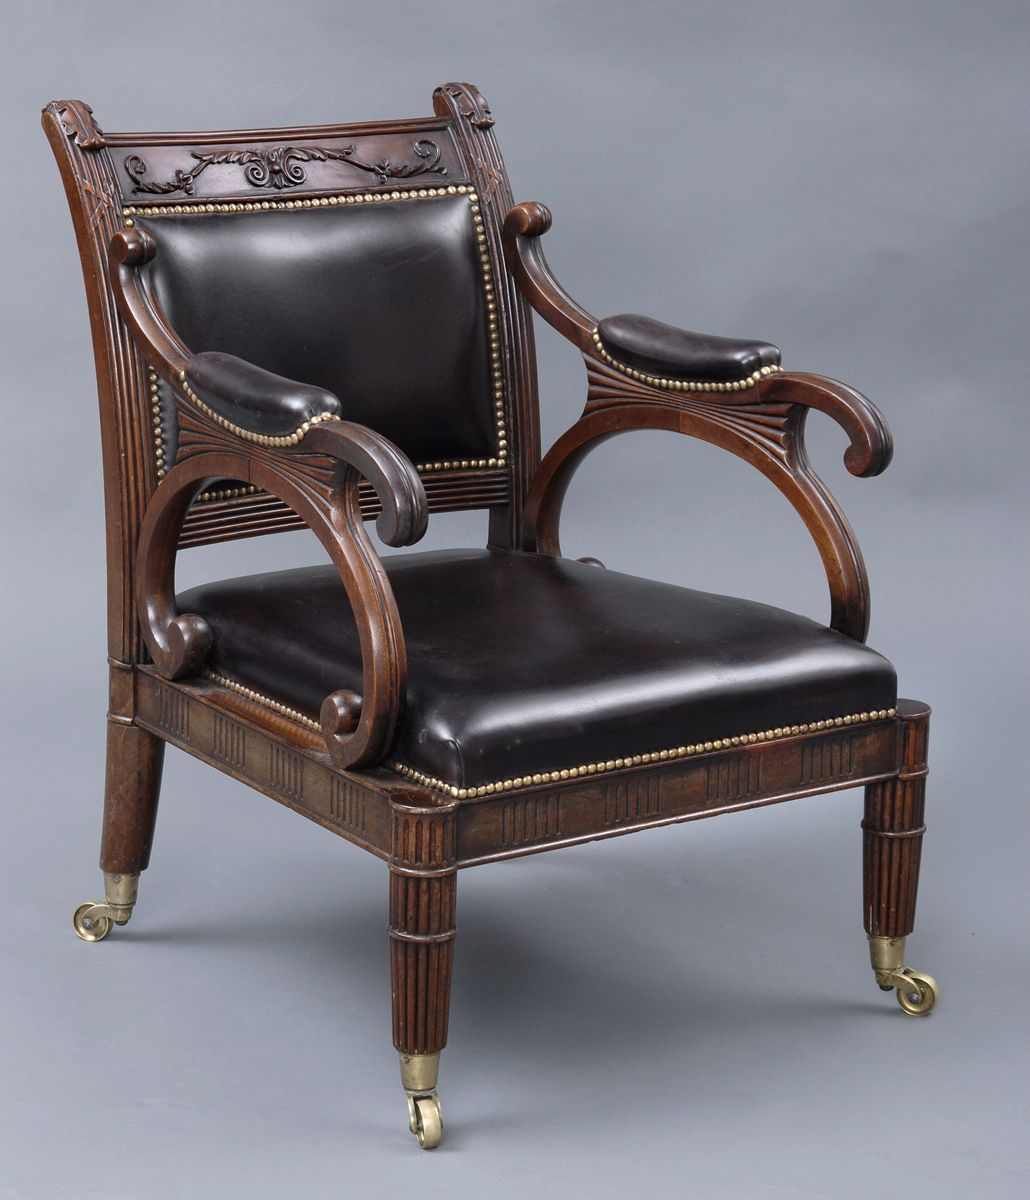 Delicieux English Antique Period Regency Mahogany U0026 Leather Library Armchair, Circa  1820 This Extremely Stylish Armchairu0027s